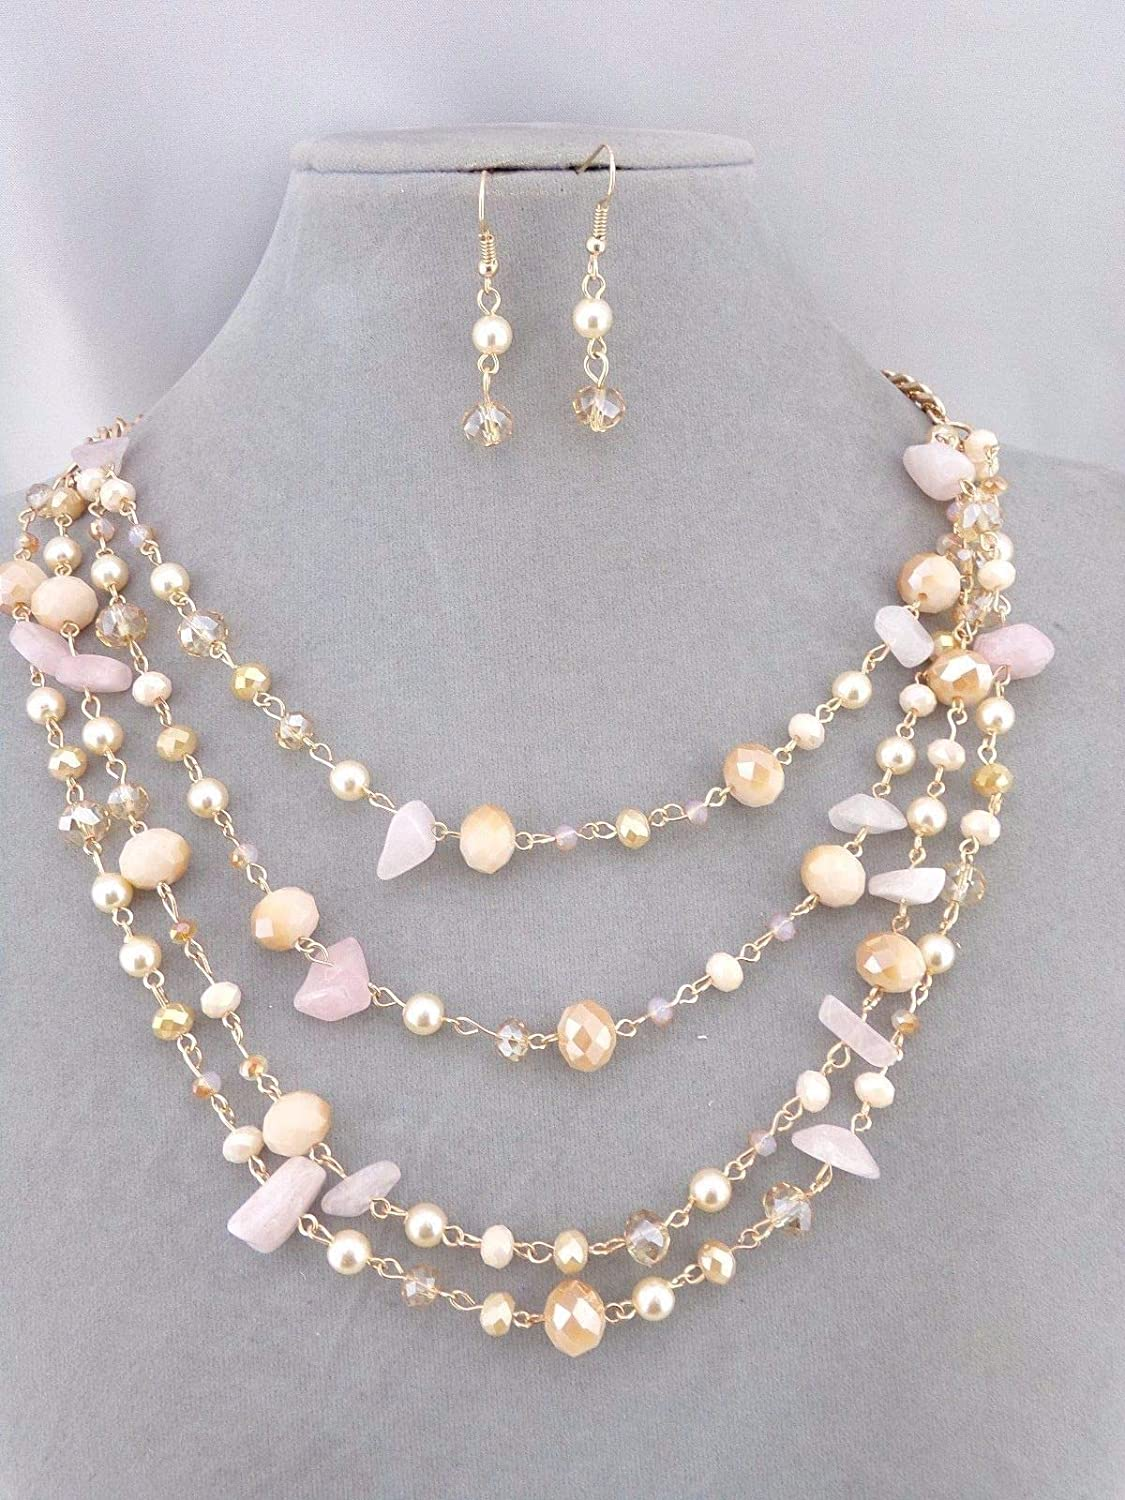 Layered Gold with Peach Pink Pearl Bead Necklace Set Fashion Jewelry New #ID-203